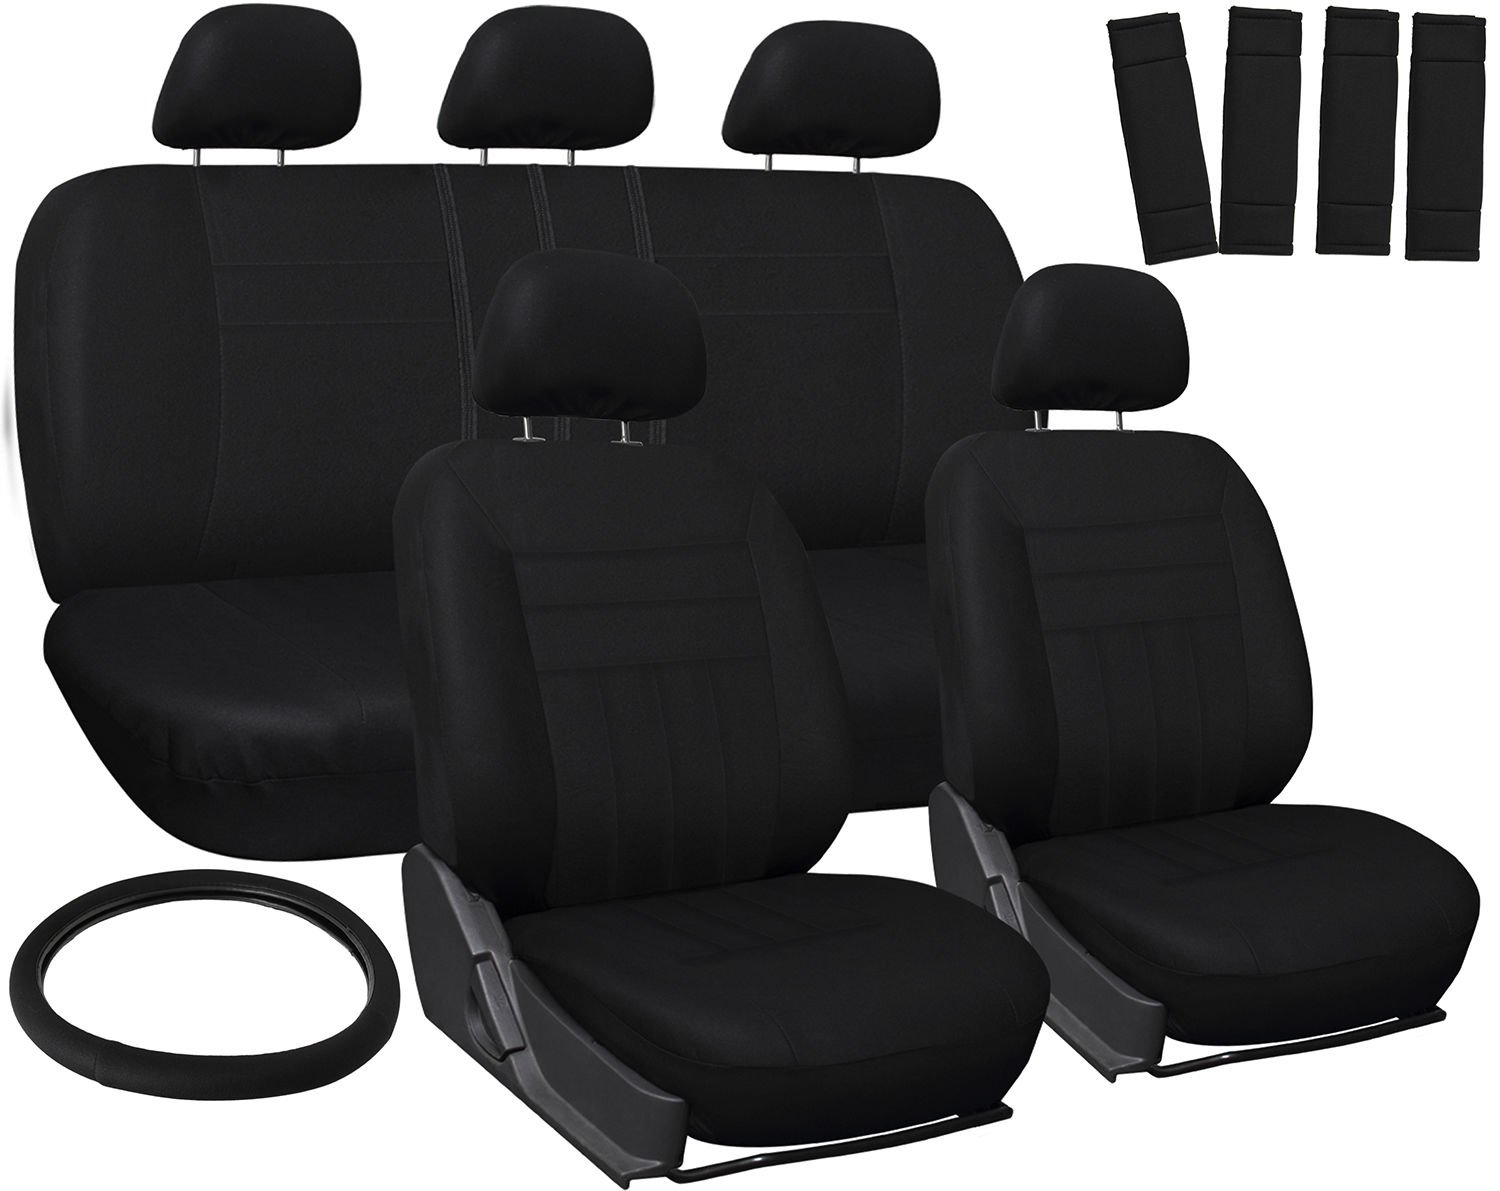 New Toyota Corolla Car Seat Covers Solid Black Steering Wheel/Belt Pad/Head Rest